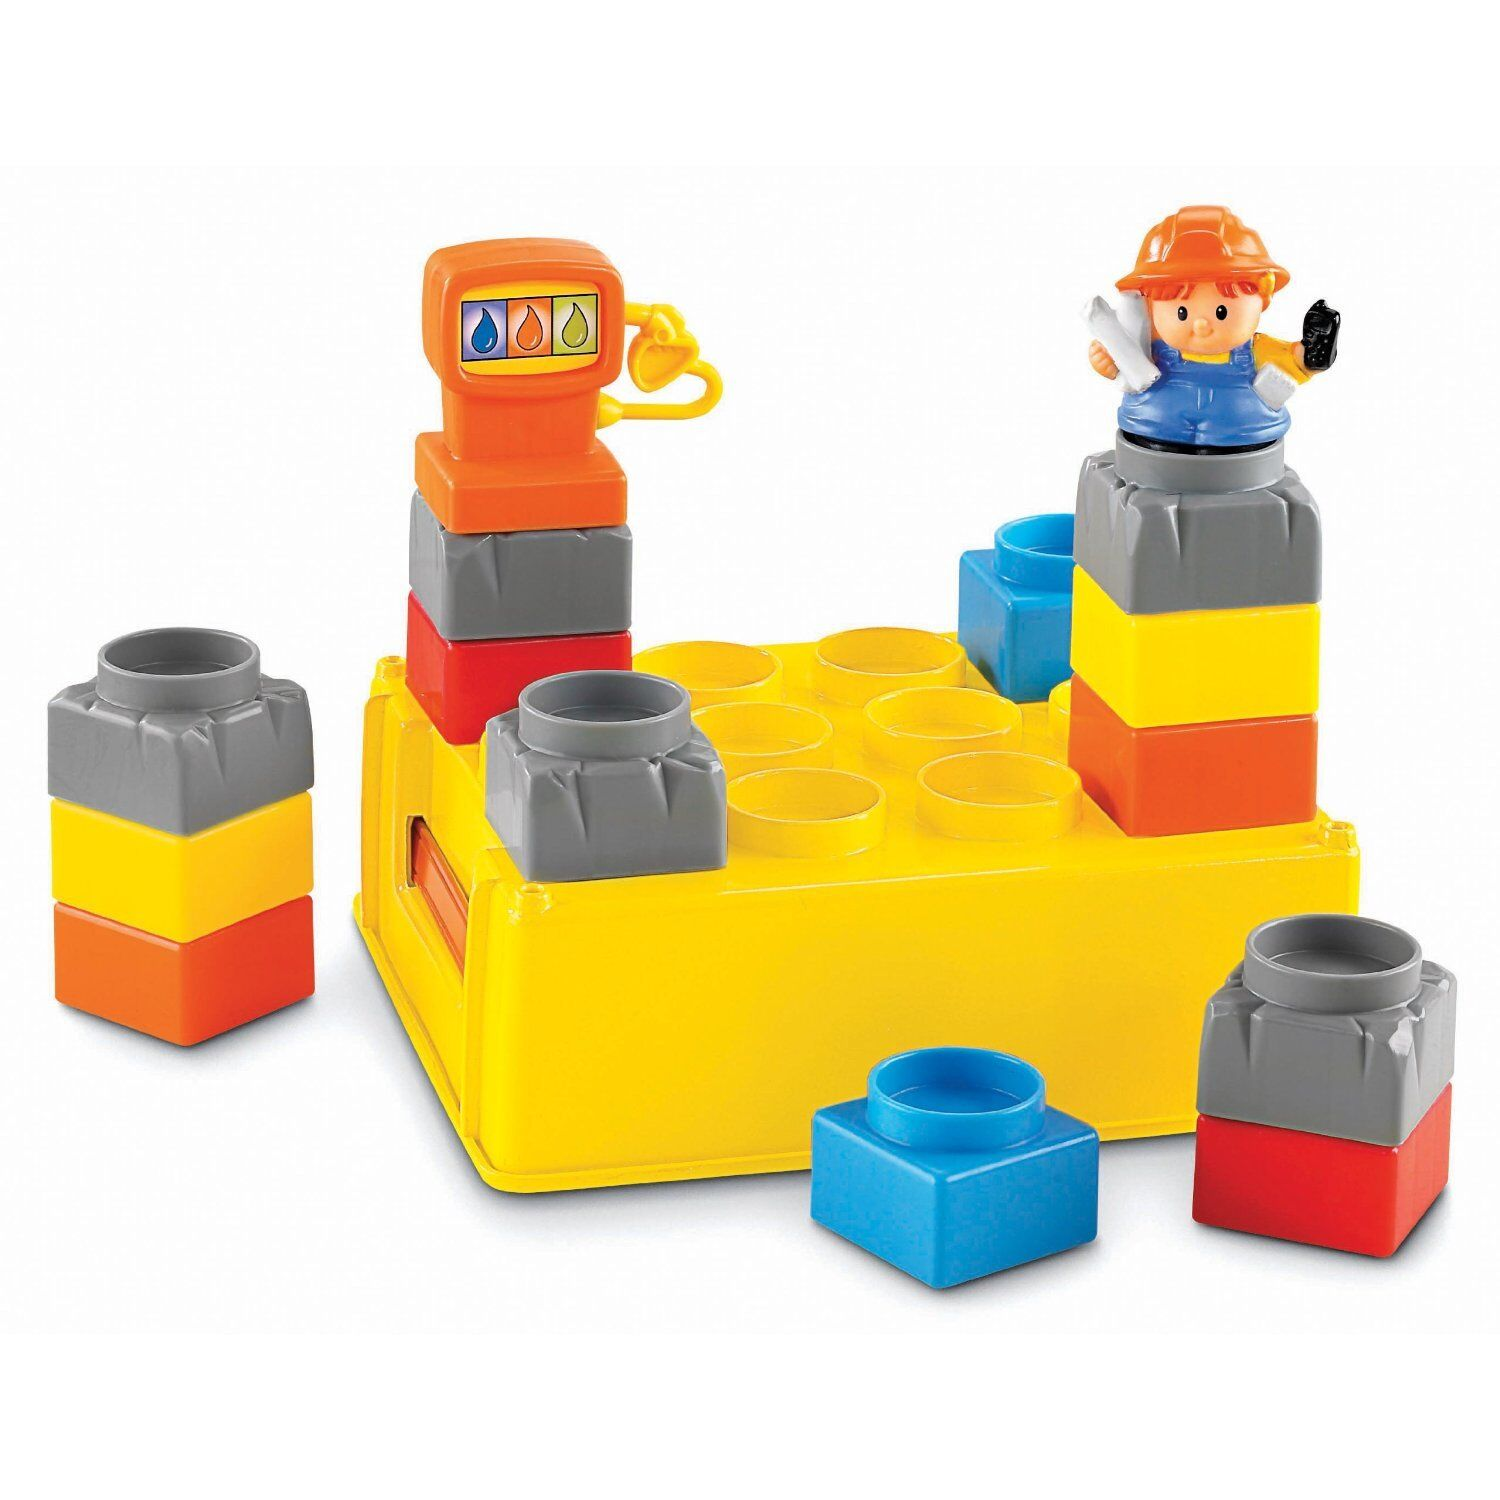 http://i.ebayimg.com/t/Fisher-Price-Little-People-Builders-Build-n-Carry-Construction-new-/00/s/MTUwMFgxNTAw/$(KGrHqJHJFcE9130GhoDBPiNVNM1h!~~60_57.JPG